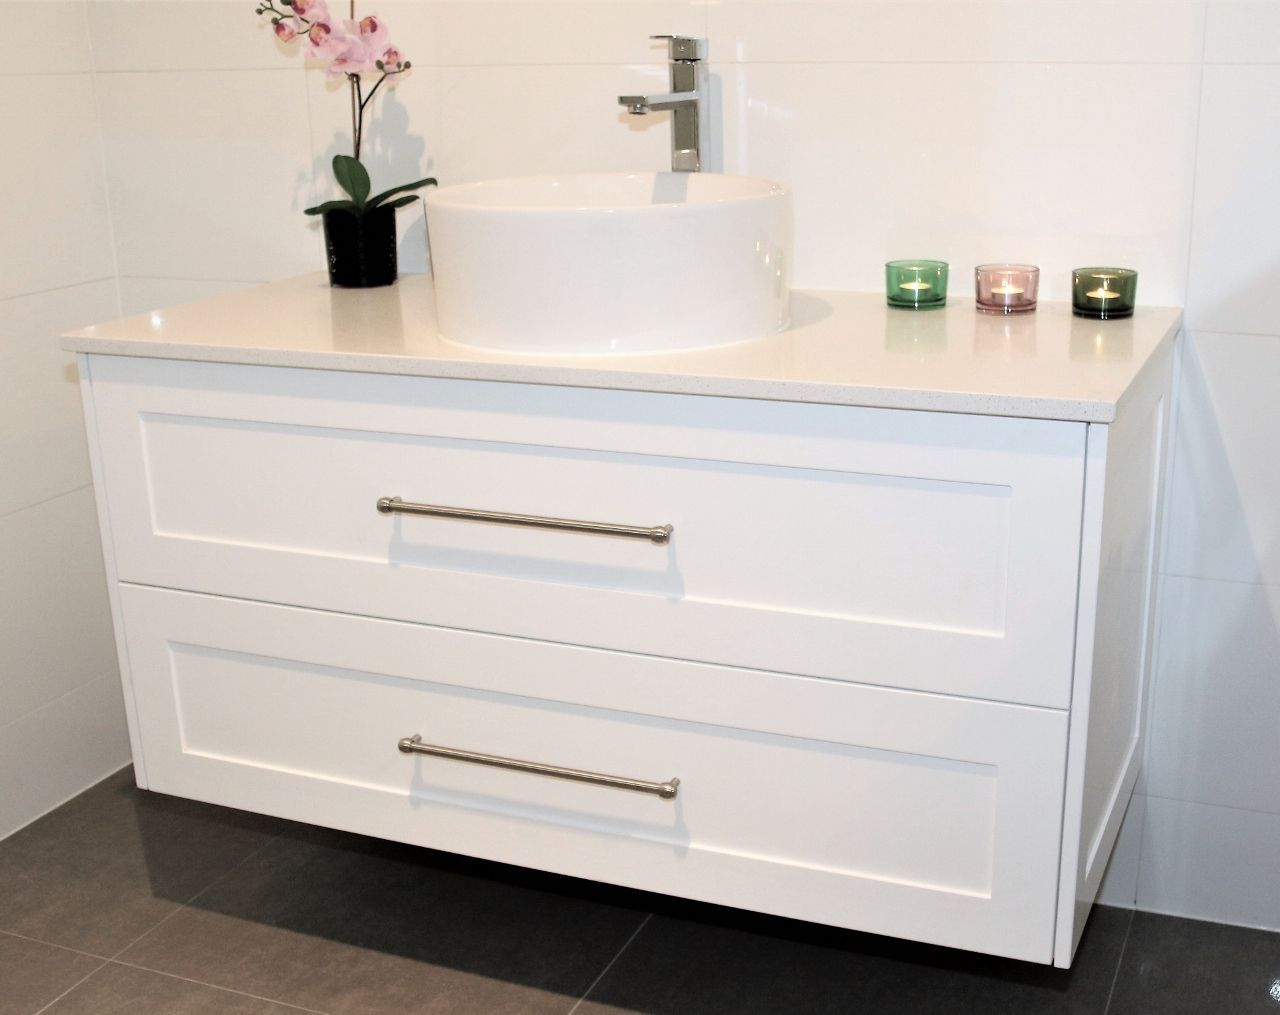 1200 Lucca Wall Hung Vanity In Shaker Style Panel With Snow Caesarstone Top Shaker Stonetop Hamptons Bathroom Vanity Bathroom Vanity Units Wall Hung Vanity